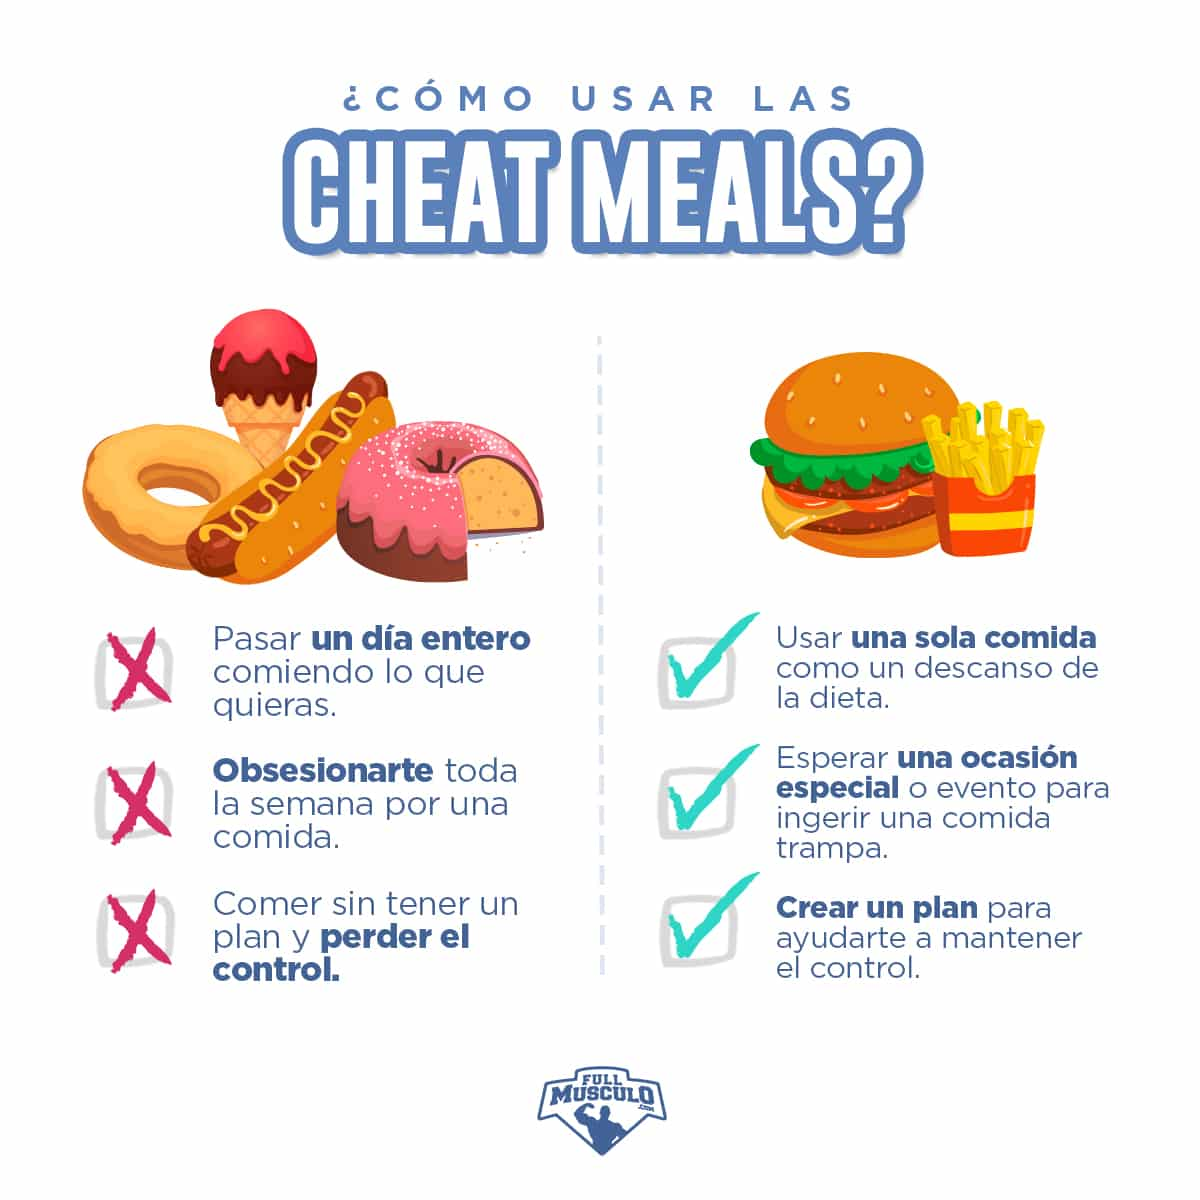 cheat meal o comida trampa